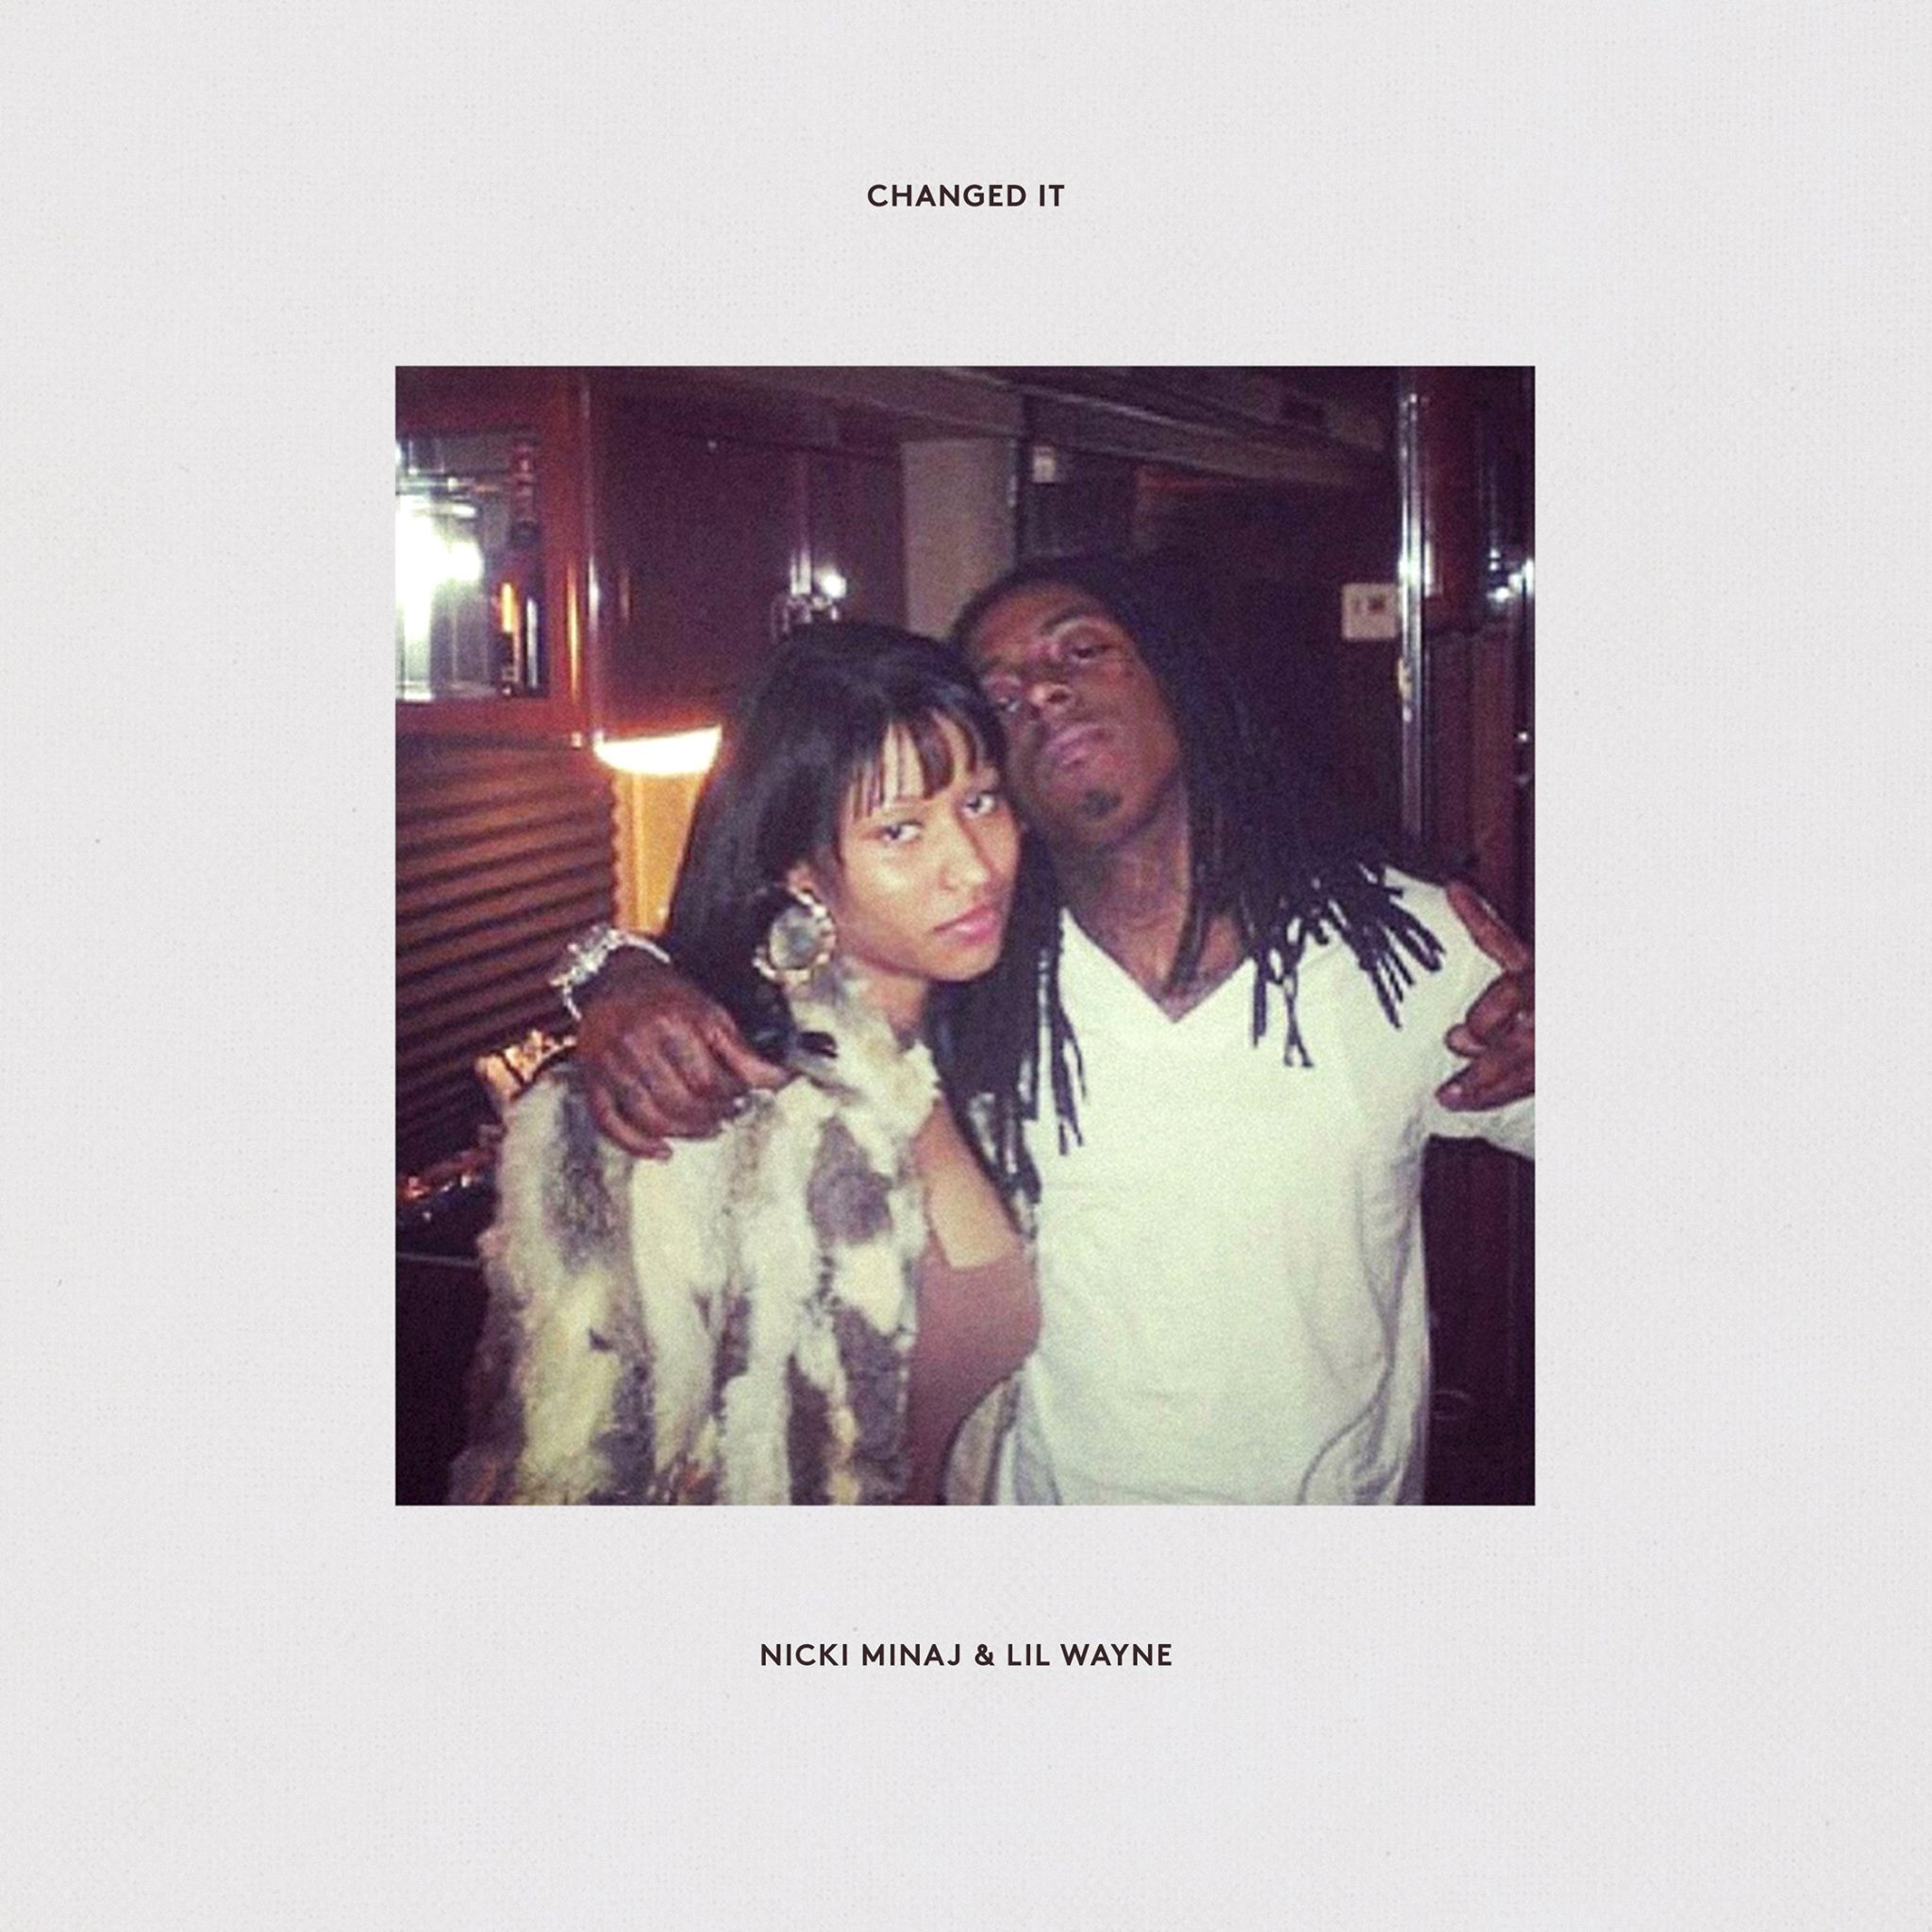 Track Review: Nicki Minaj & Lil Wayne, 'Changed It'